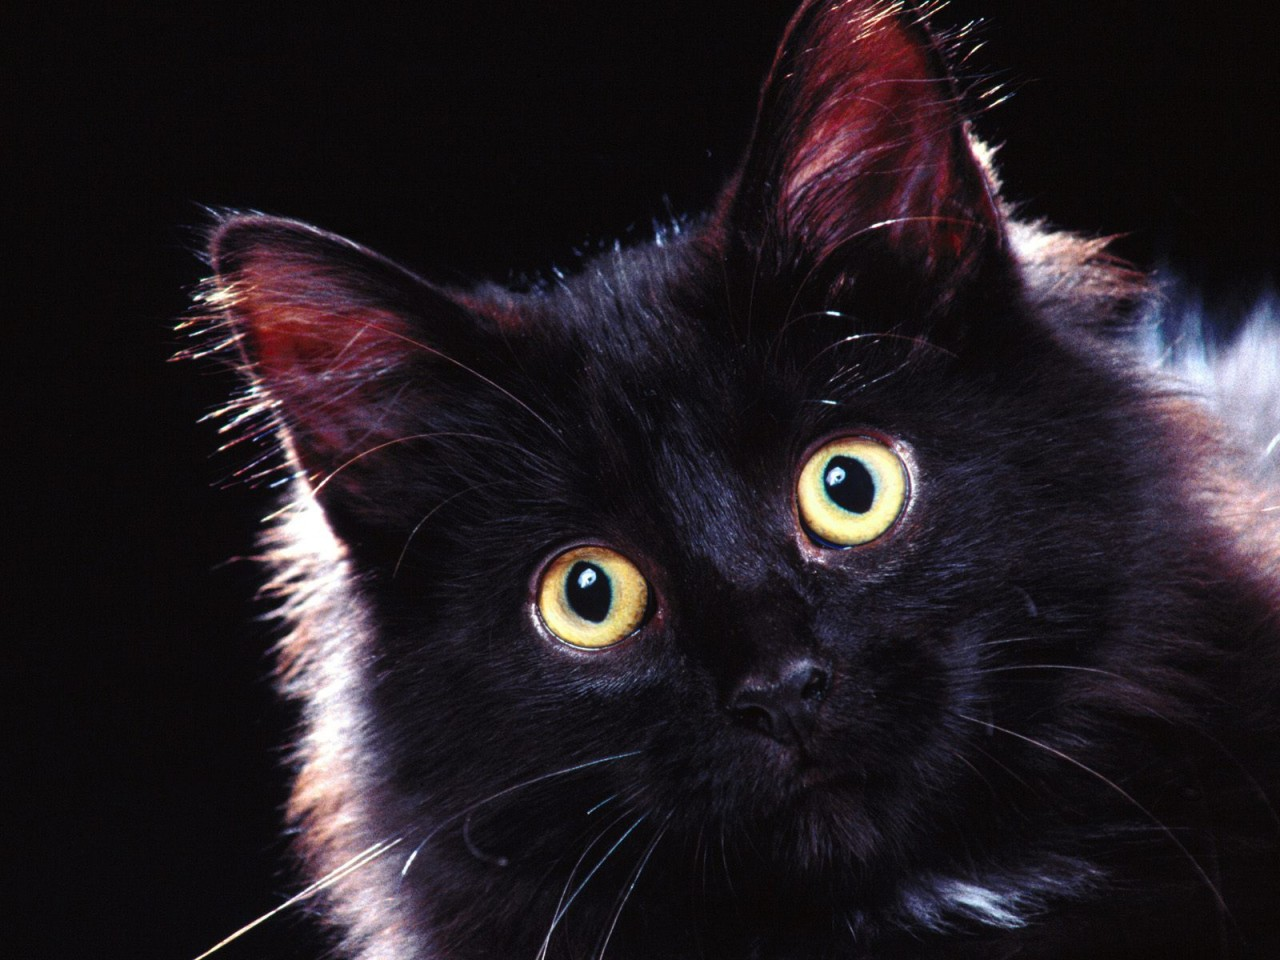 Surprised Cat Hd Wallpaper High Definition High Resolution Hd Wallpapers